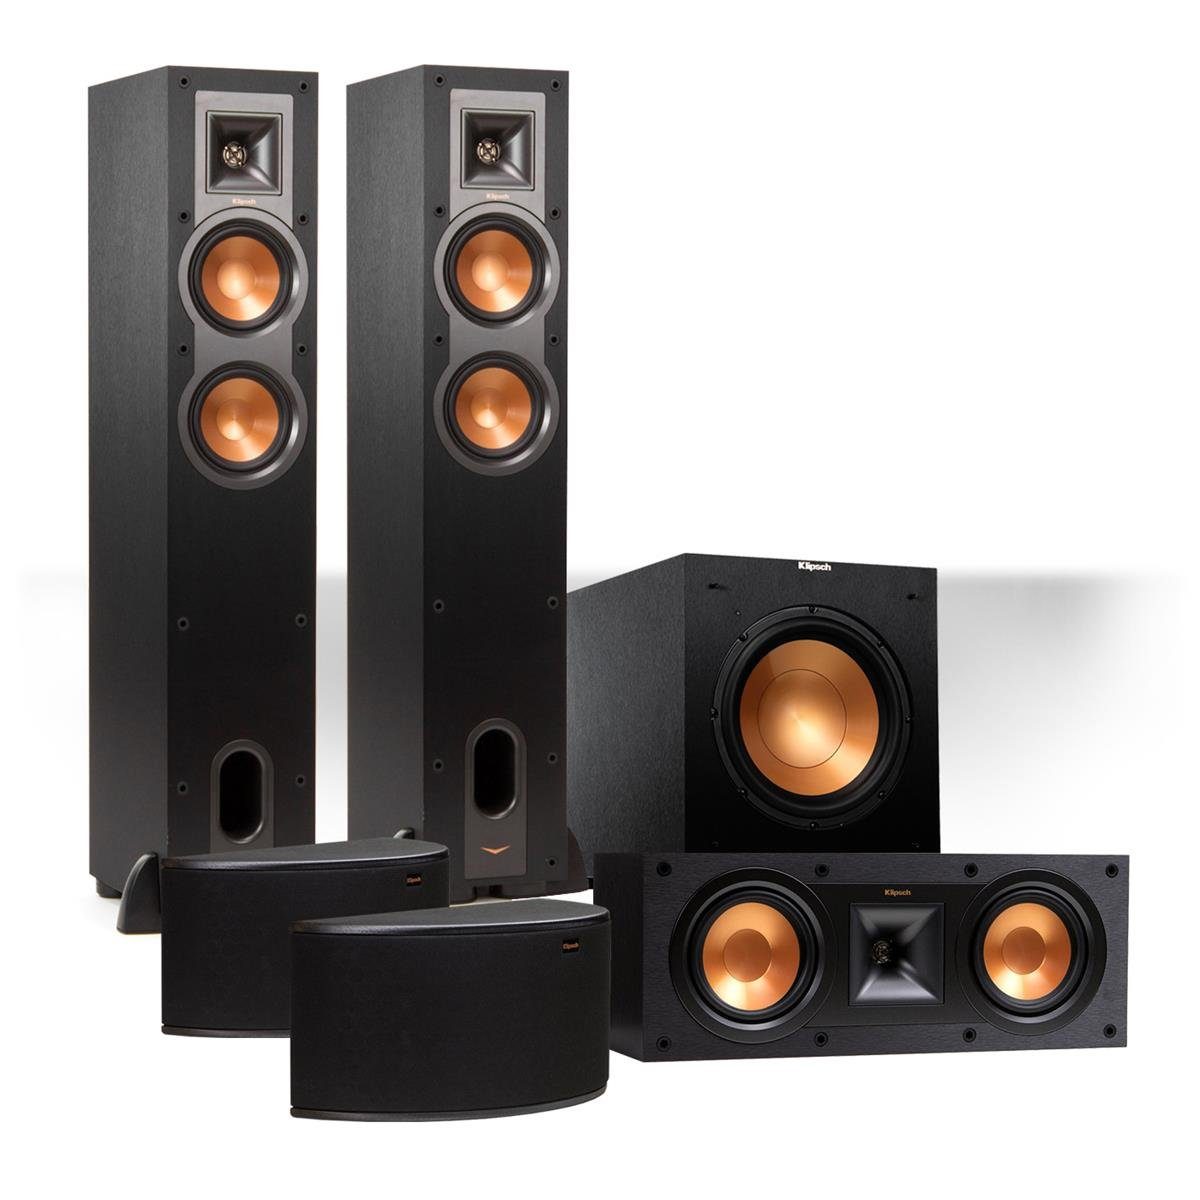 Klipsch Reference 5.1 Channel R-24F Surround Home Theater Speaker Bundle with 12'' Subwoofer (Black)